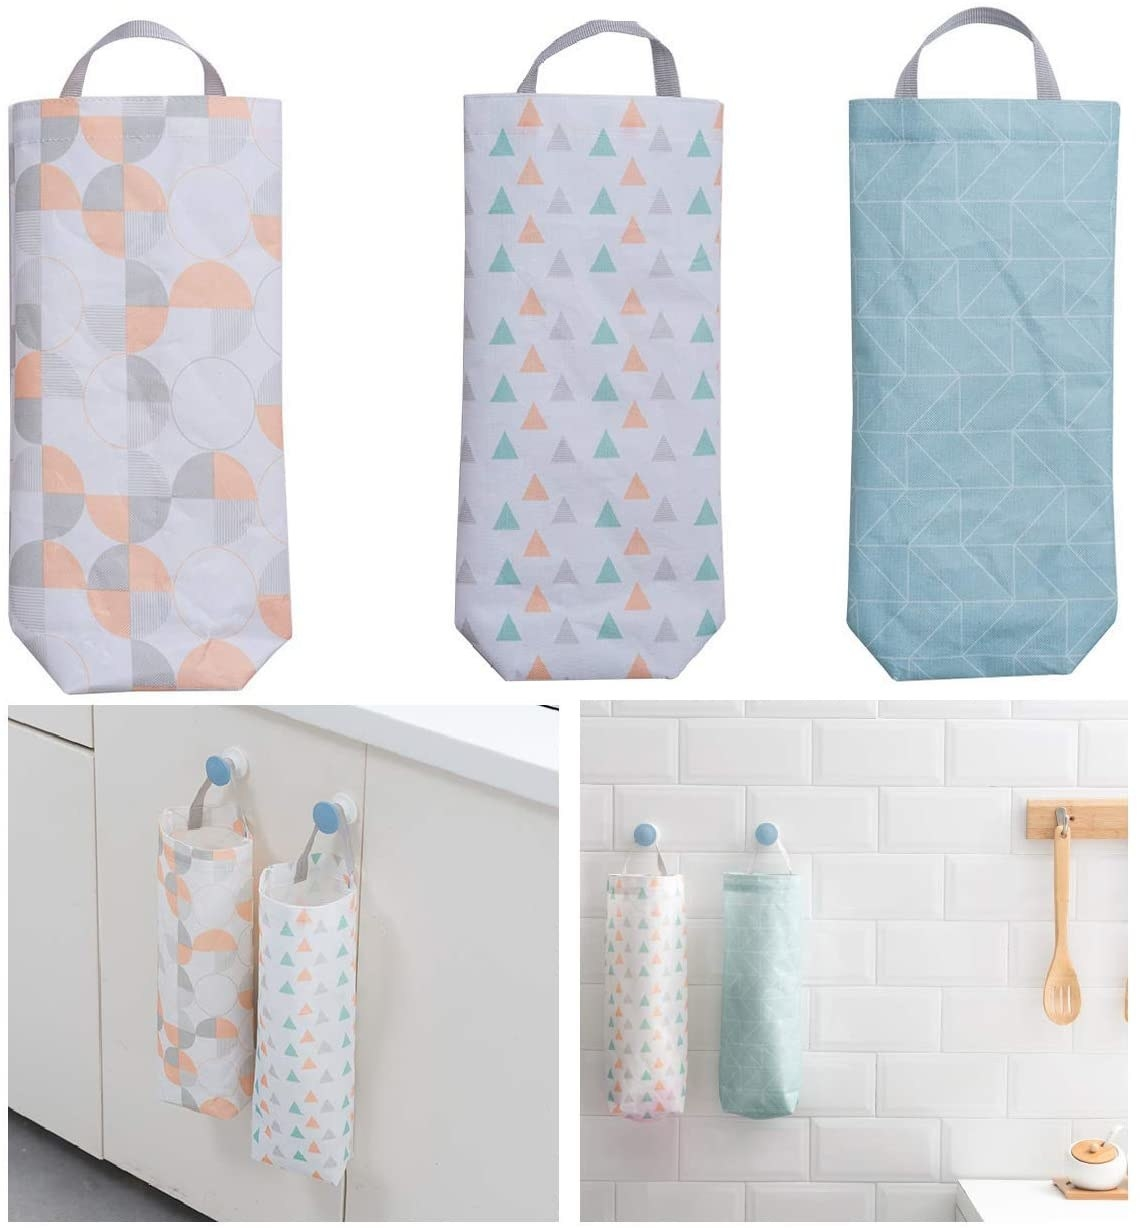 two hanging bag organizers with a hand pulling a grocery bag out of the bottom of one